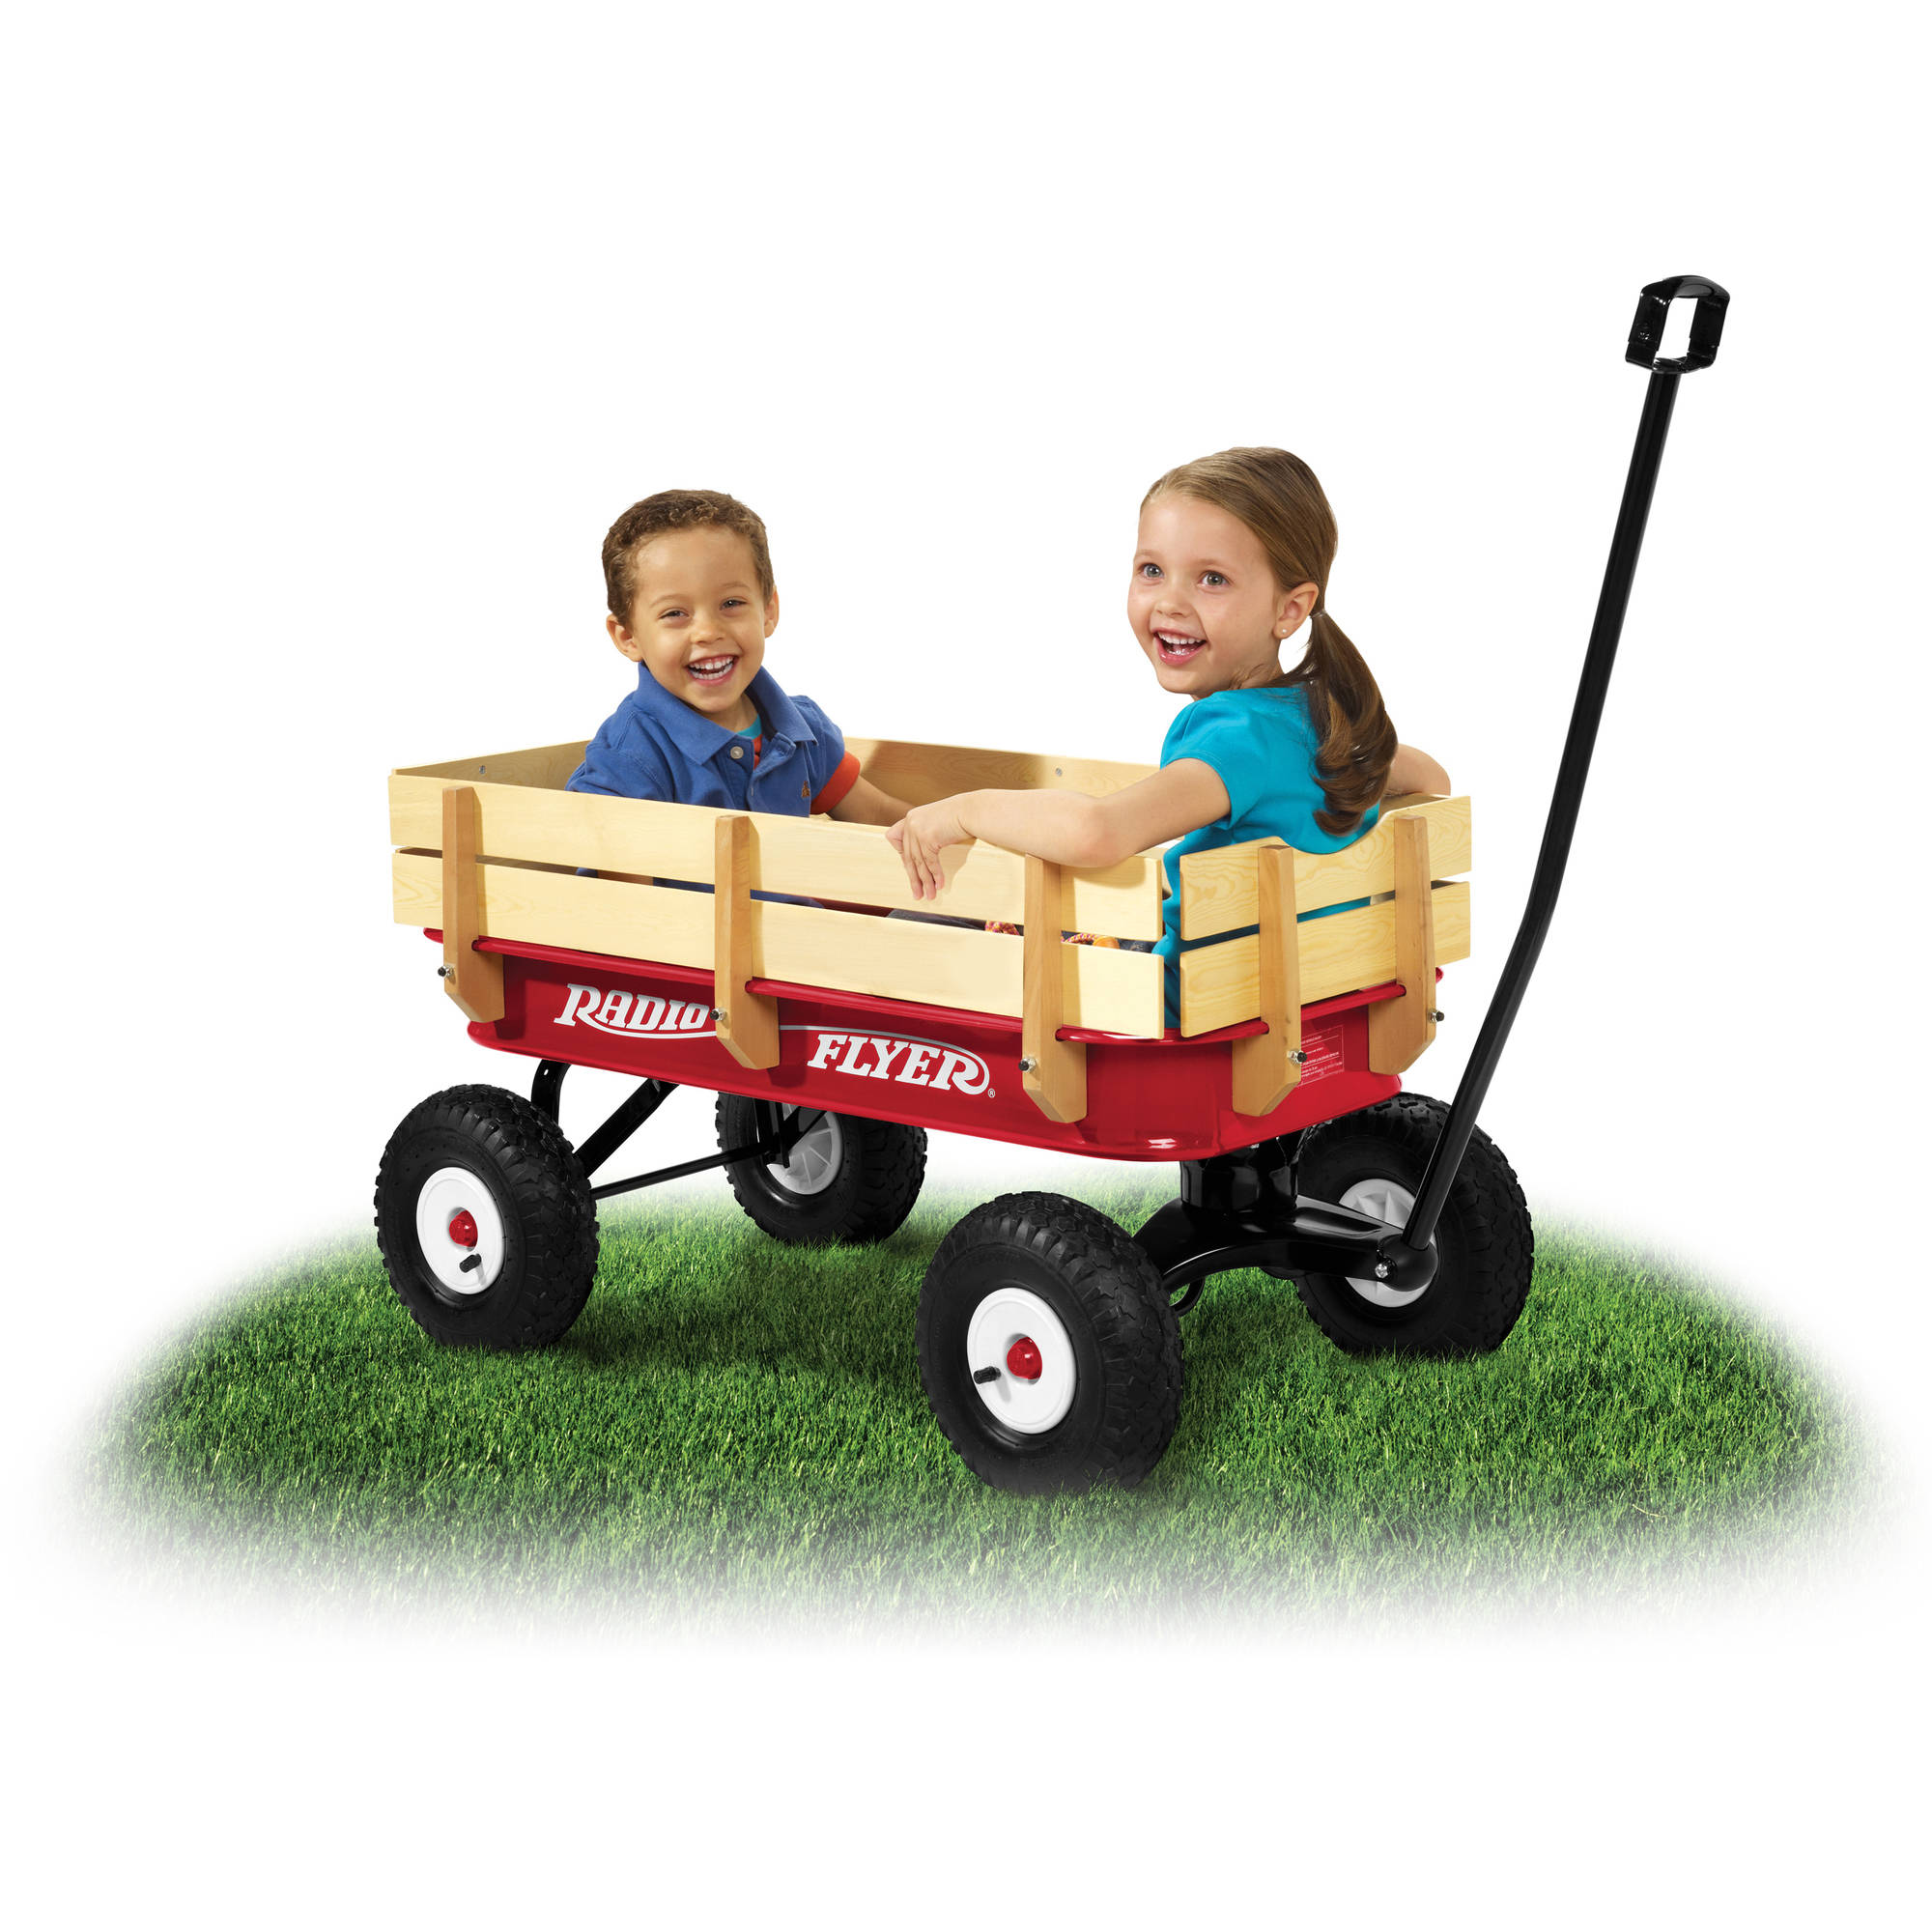 radio flyer, all-terrain steel & wood wagon, air tires, red